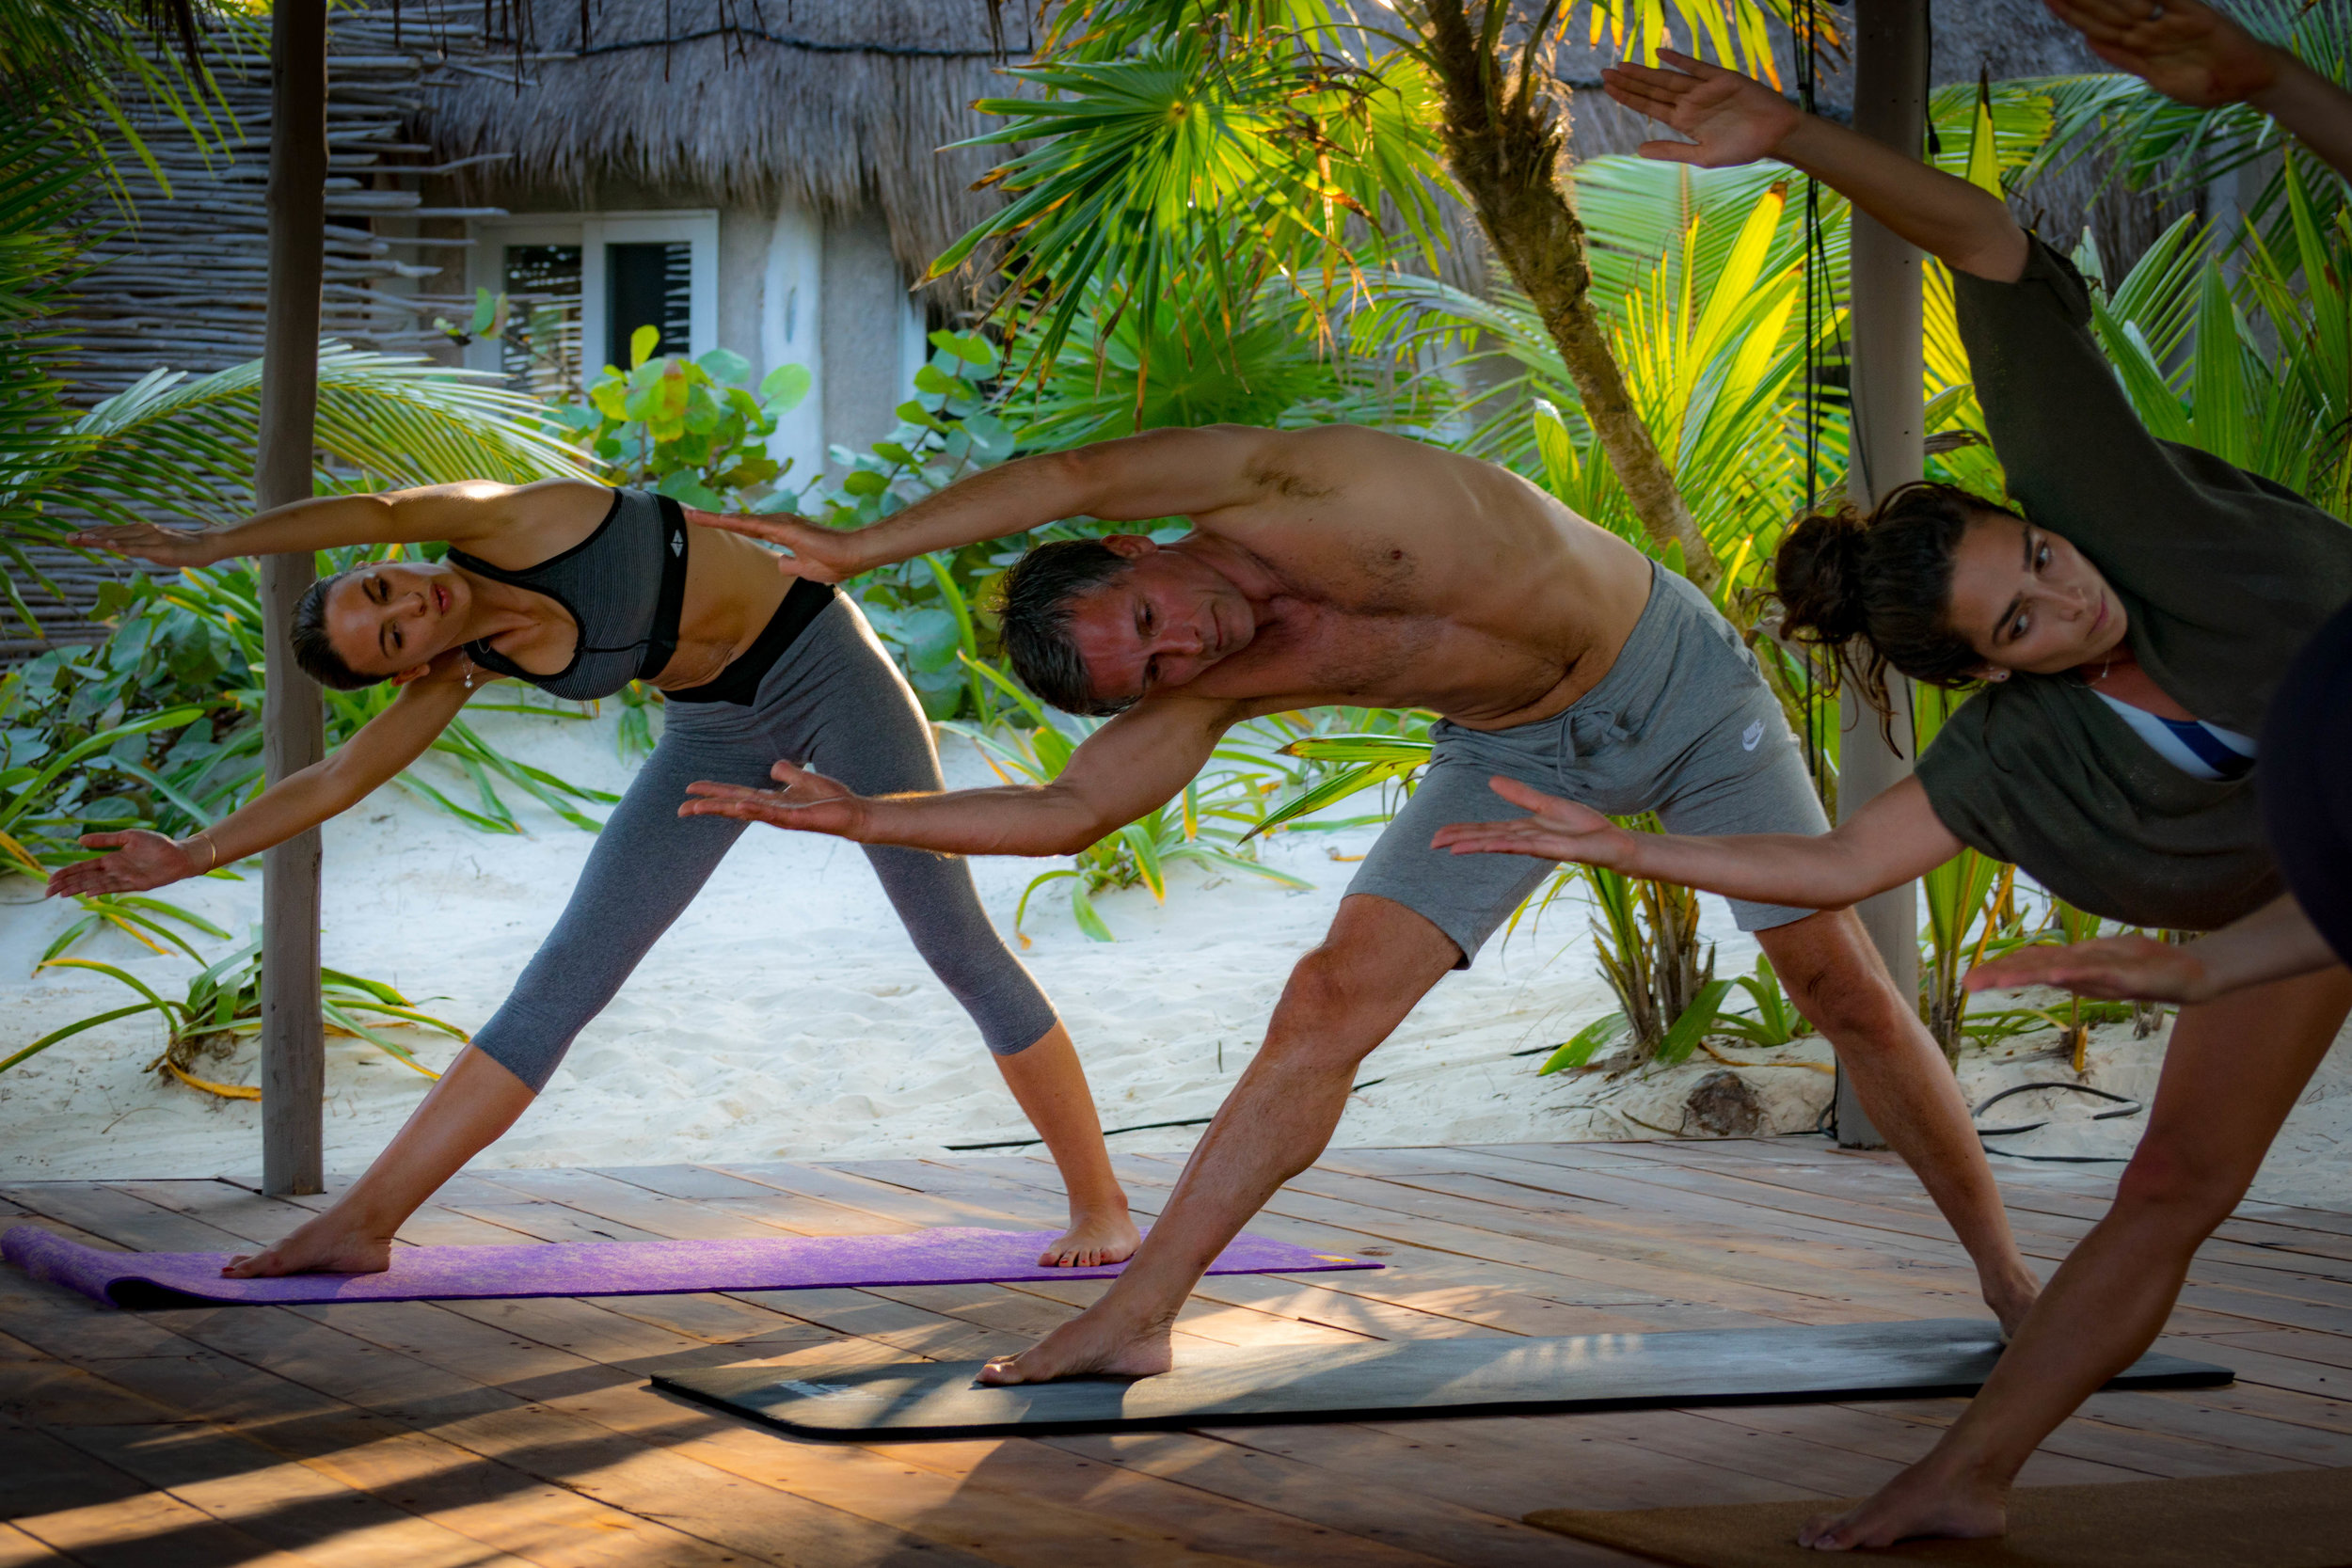 Who are we? - TULUM WELLNESS ACADEMY IS LOCATED AT THE SOUTHERNMOST TIP OF THE RIVIERA MAYA ON A STRETCH OF WHITE SAND AND TURQUOISE WATER THAT BORDERS THE DENSE YUCATAN JUNGLE.WE HAVE PROFOUND RESPECT FOR THE LAND UPON WHICH WE BUILD OUR ACADEMY AND COMMUNITIES. WE ARE INSPIRED BY THE LOCAL HERITAGE AND HISTORIES OF TULUM. WE EMBRACE NOT ONLY THE LOCAL CULTURE BUT ALSO THE ANCIENT TRADITIONS AND FORGOTTEN WISDOM OF THE REGION.TODAY THE RUGGED, PRISTINE COASTAL REGION IS HOME TO SOME OF MEXICO'S BEST PRESERVED RUINS, MYSTICAL CENOTES, UNDERWATER CAVES, AND THE LARGEST PROTECTED COASTAL AREA IN MEXICO, THE SIAN KA'AN BIOSPHERE RESERVE.WE CELEBRATE THE RICH HERITAGE OF THIS ANCIENT CULTURE WITH YOGA AND HOLISTIC CANNABIS PROGRAMING, WELCOME CEREMONIES, RITUALS, TRADITIONAL CUISINE, THAT HIGHLIGHTS THE SACRED WISDOM OF THIS LAND. WE WISH FOR TULUM TO REMAIN A UNIQUE PARADISE, WHERE THE MAGIC, CULTURE AND MYSTIQUE OF THE ANCIENT MAYA CAN BE WITNESSED AND FELT.